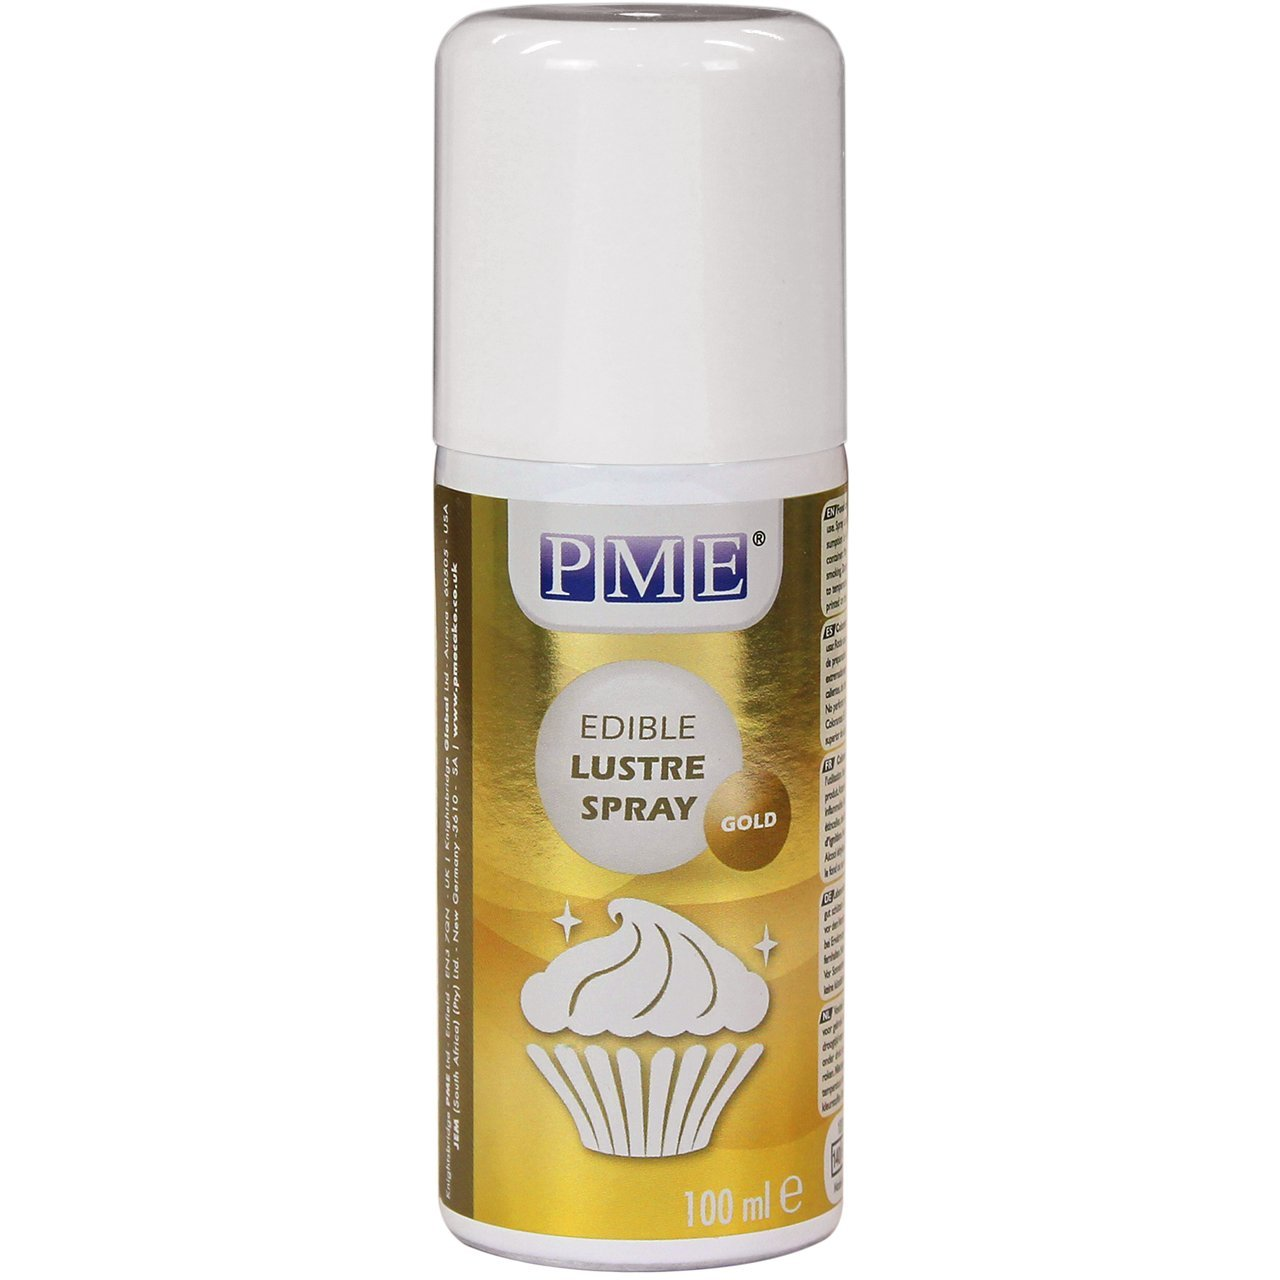 PME Edible Lustre Spray, Gold, 3.3 Ounce